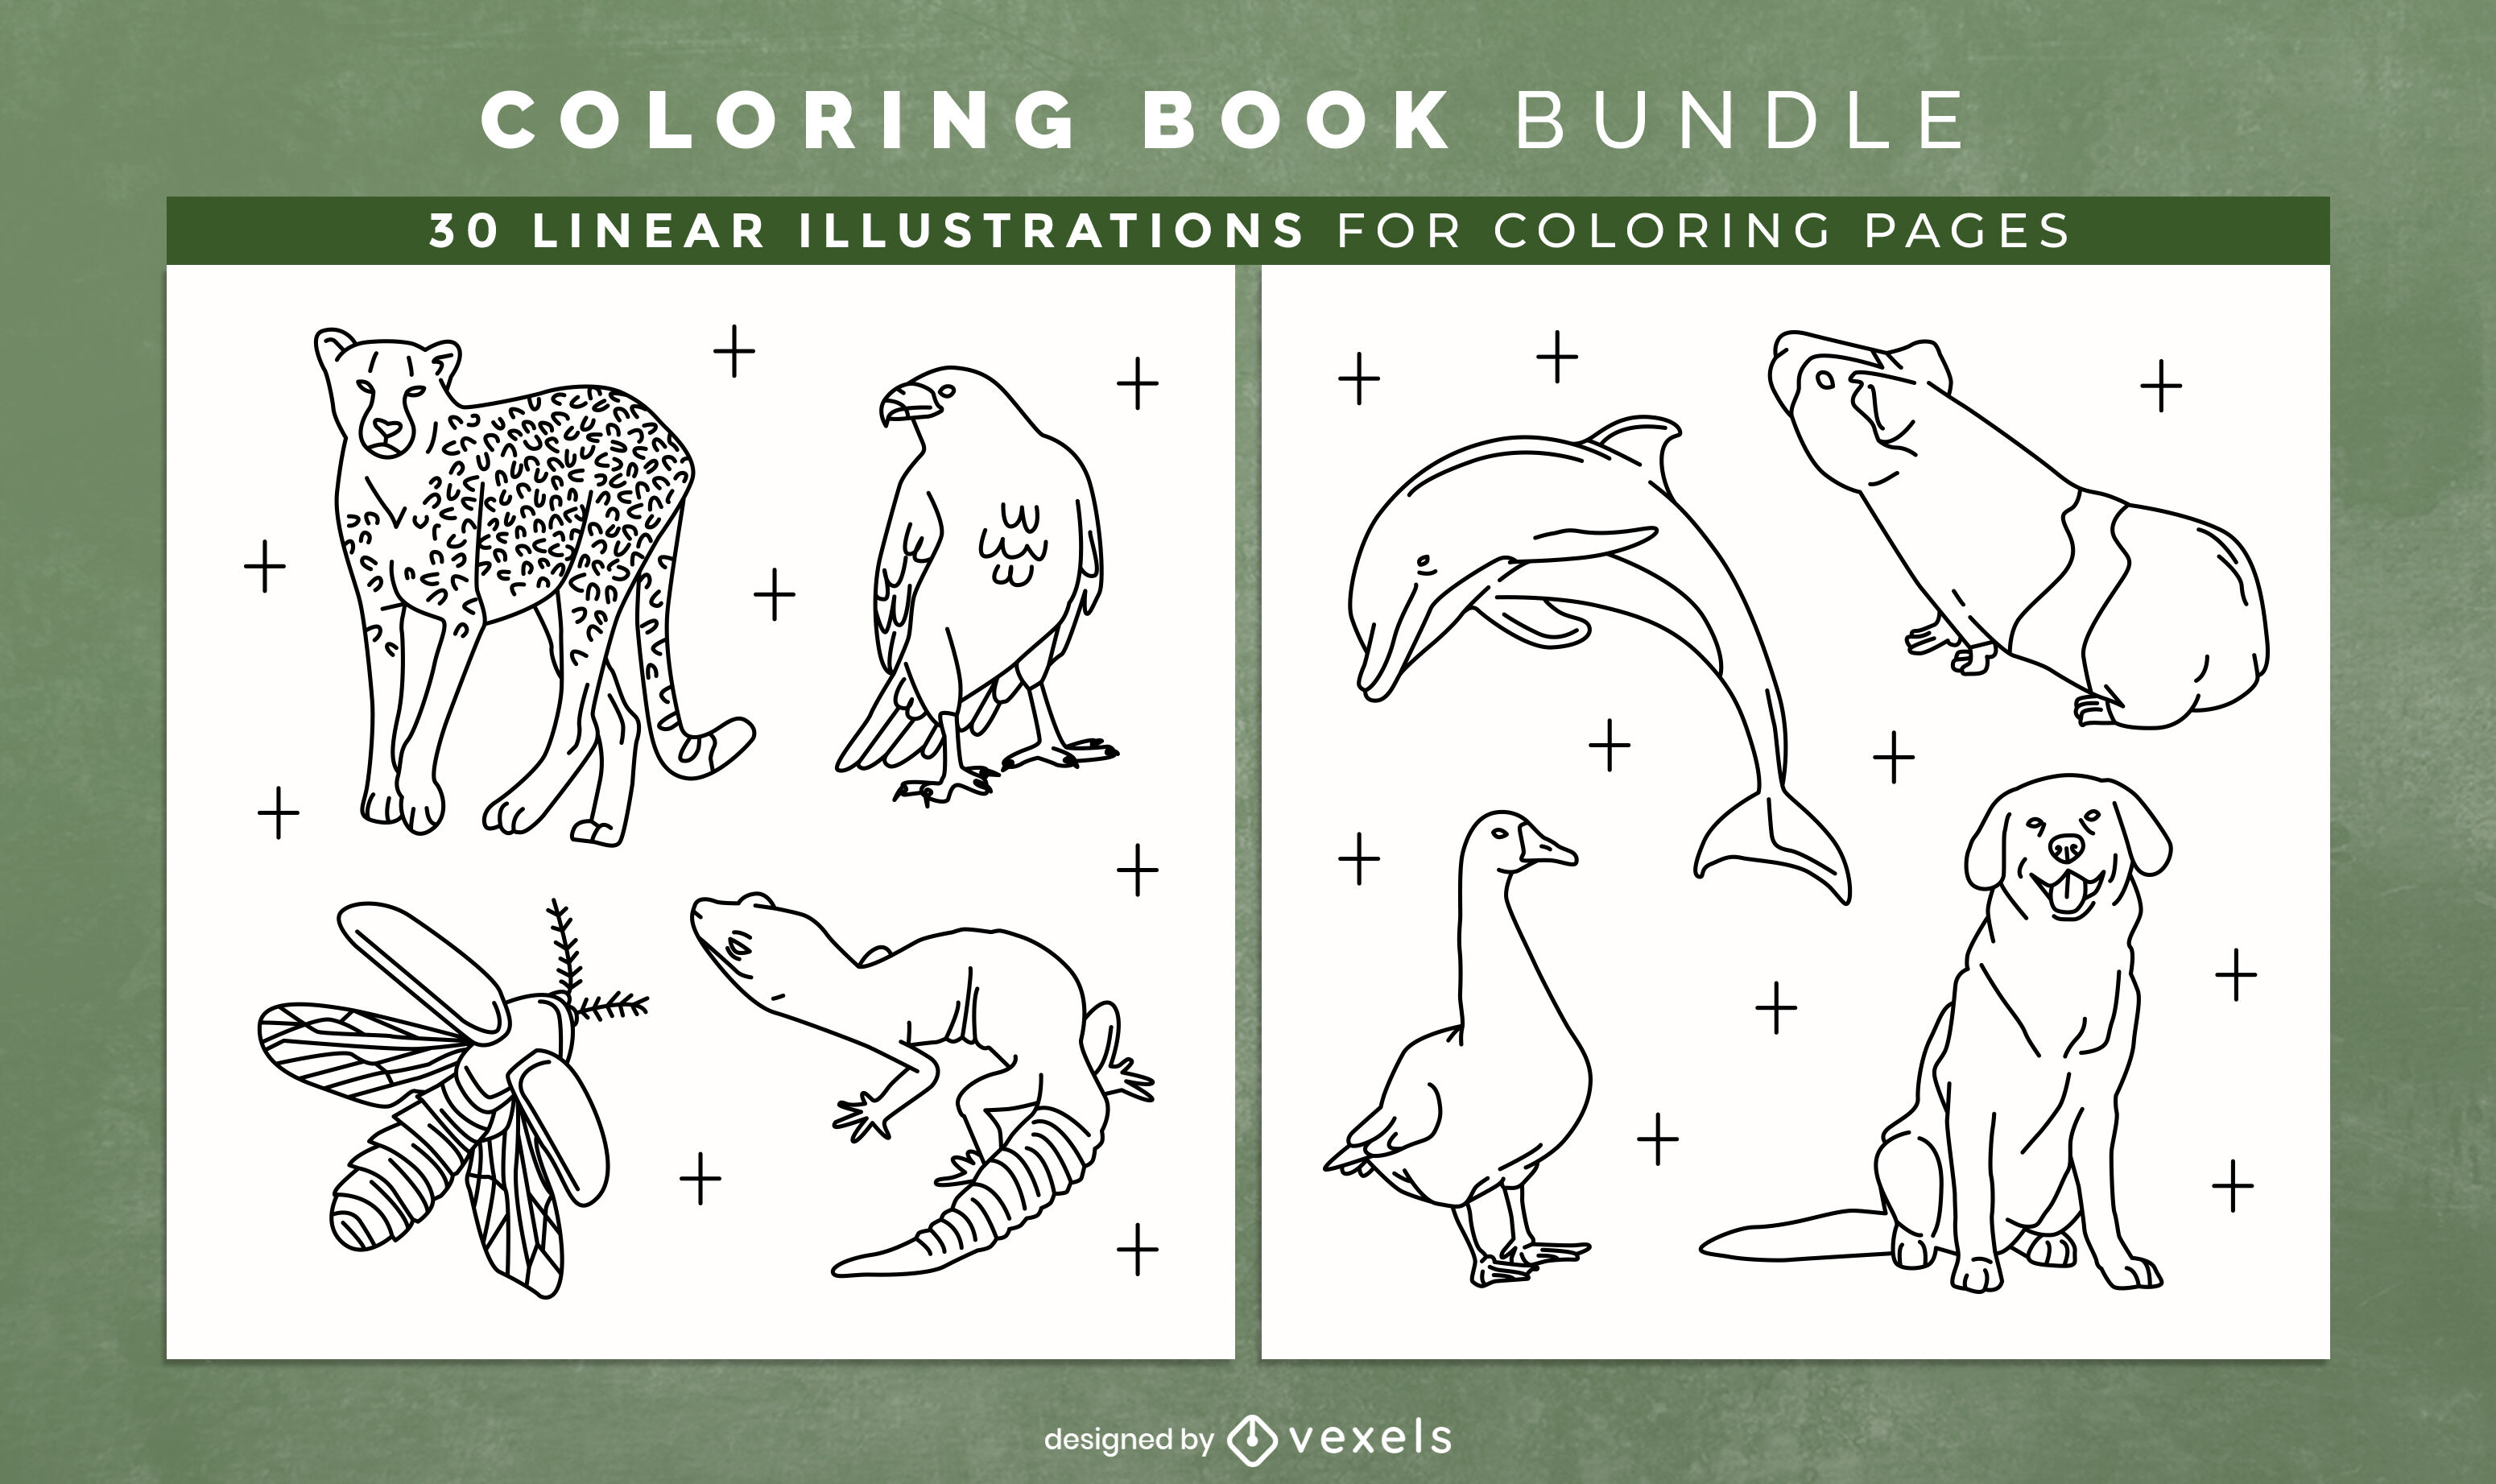 Awesome animals coloring book interior design